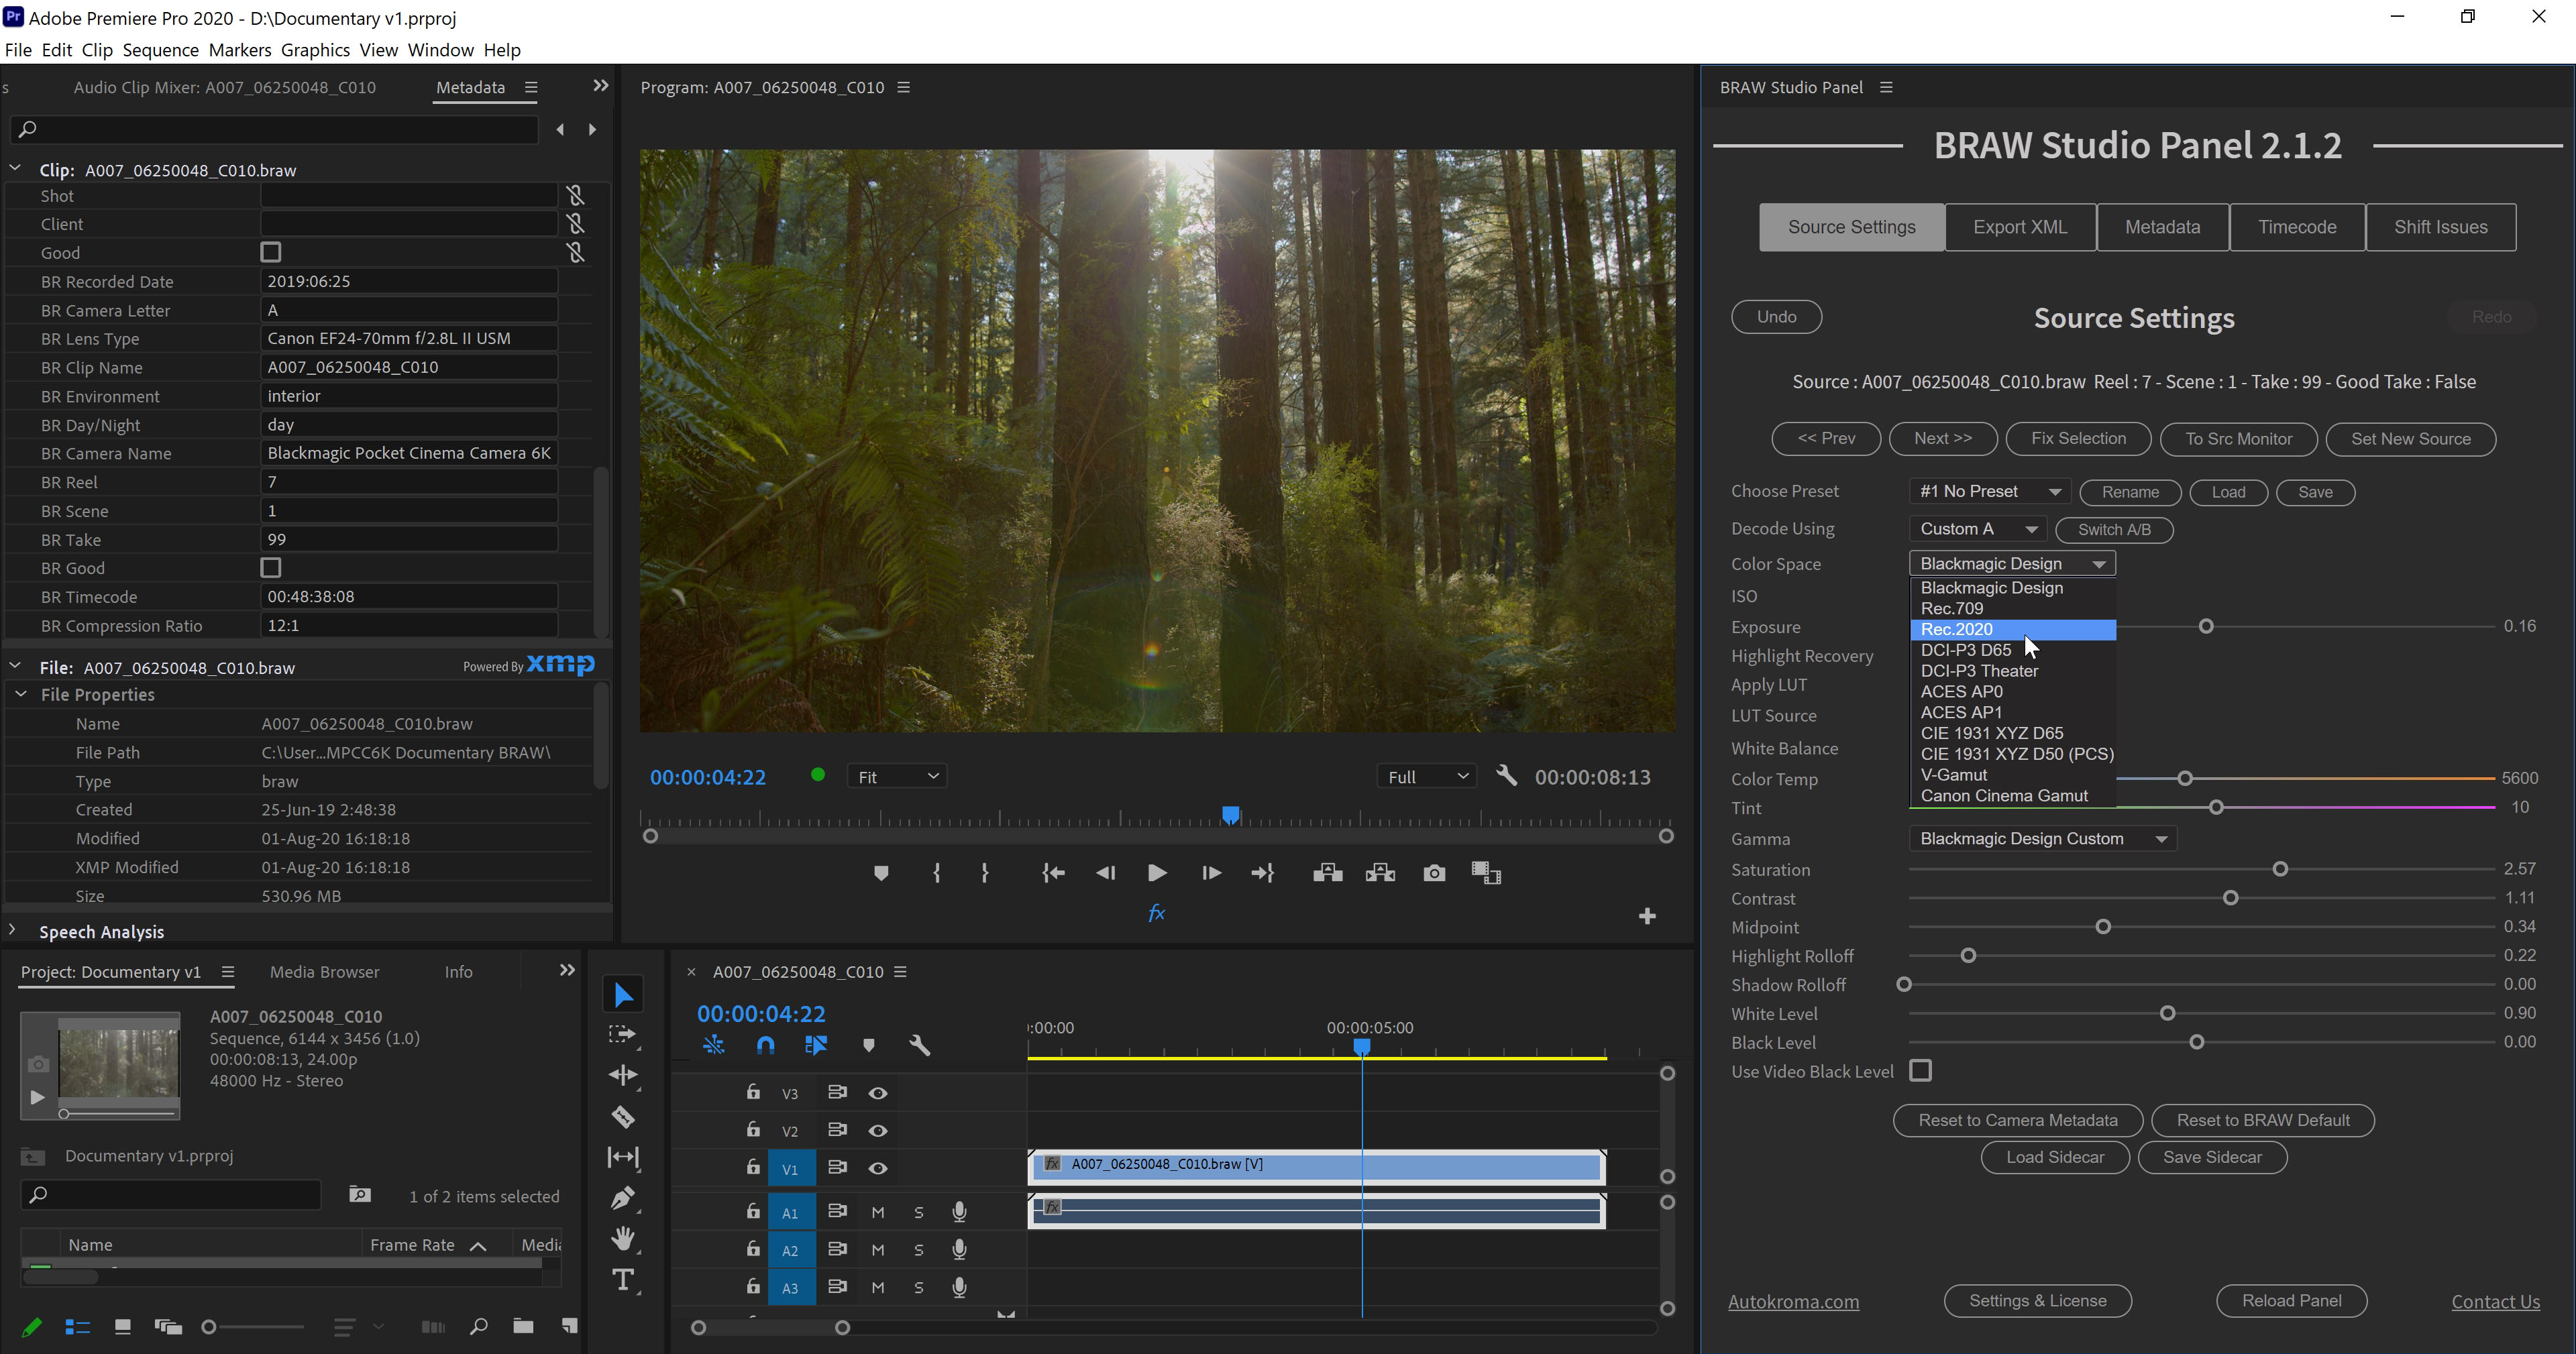 BRAW Studio V2 for Adobe Premiere Pro on Microsoft Windows (Blackmagic RAW importer plugin screenshot) showing the Source Settings Panel